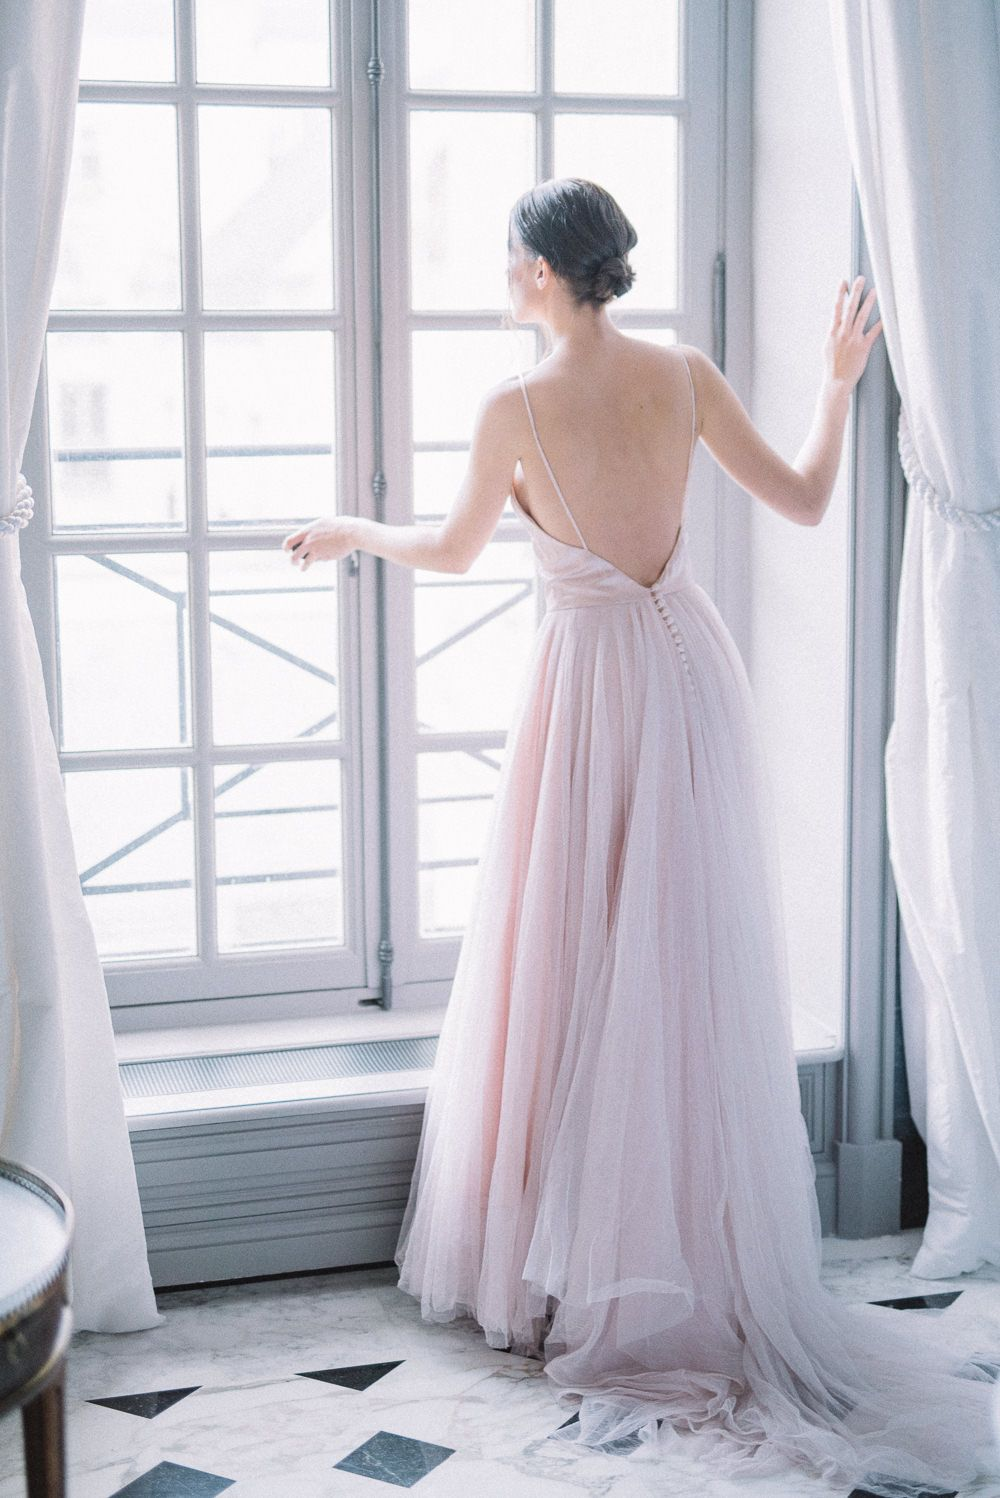 fb0e1a2faaf0 SAMPLE SALE; pale shell pink silk satin and tulle ballerina style wedding  dress, UK size 8/10   crystal tree   Wedding dresses, Dresses, Pink wedding  ...